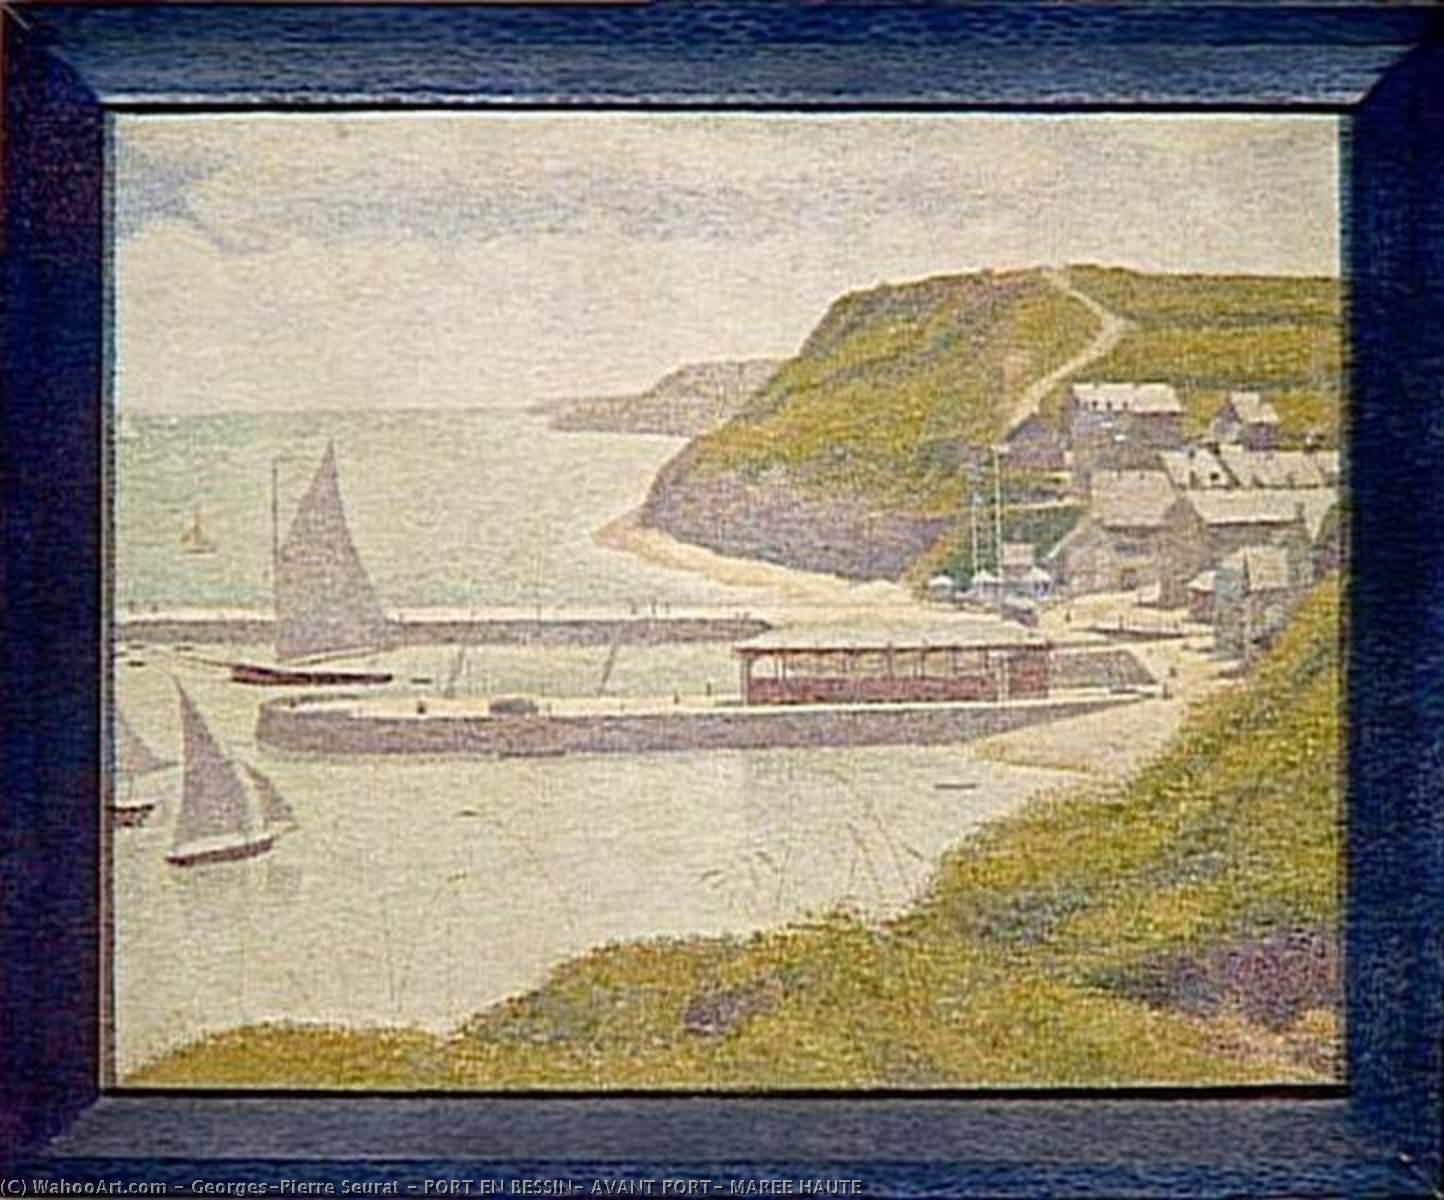 famous painting PORT EN BESSIN, AVANT PORT, MAREE HAUTE of Georges Pierre Seurat